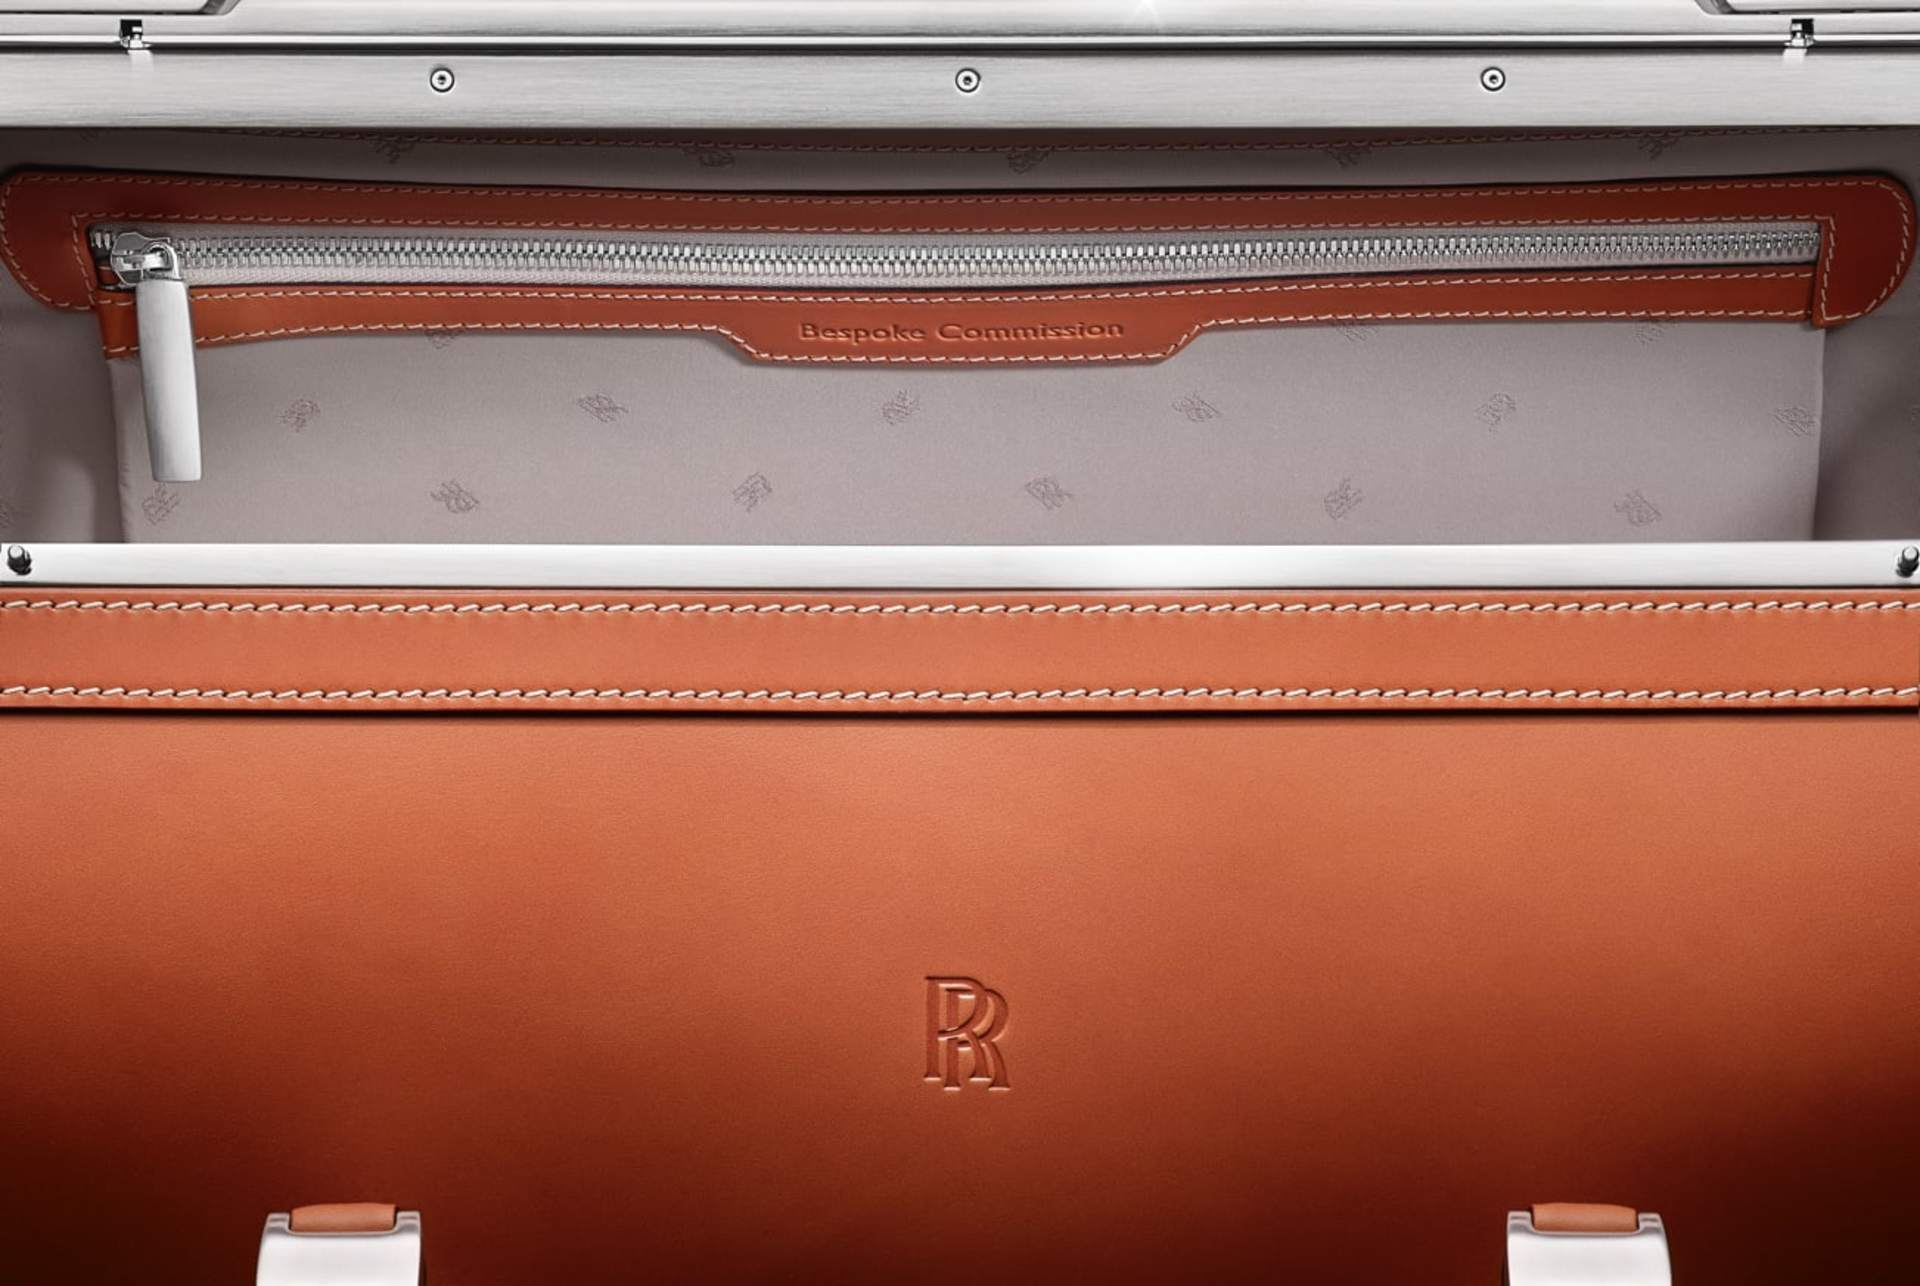 image of the trim detail on rolls-royce luggage